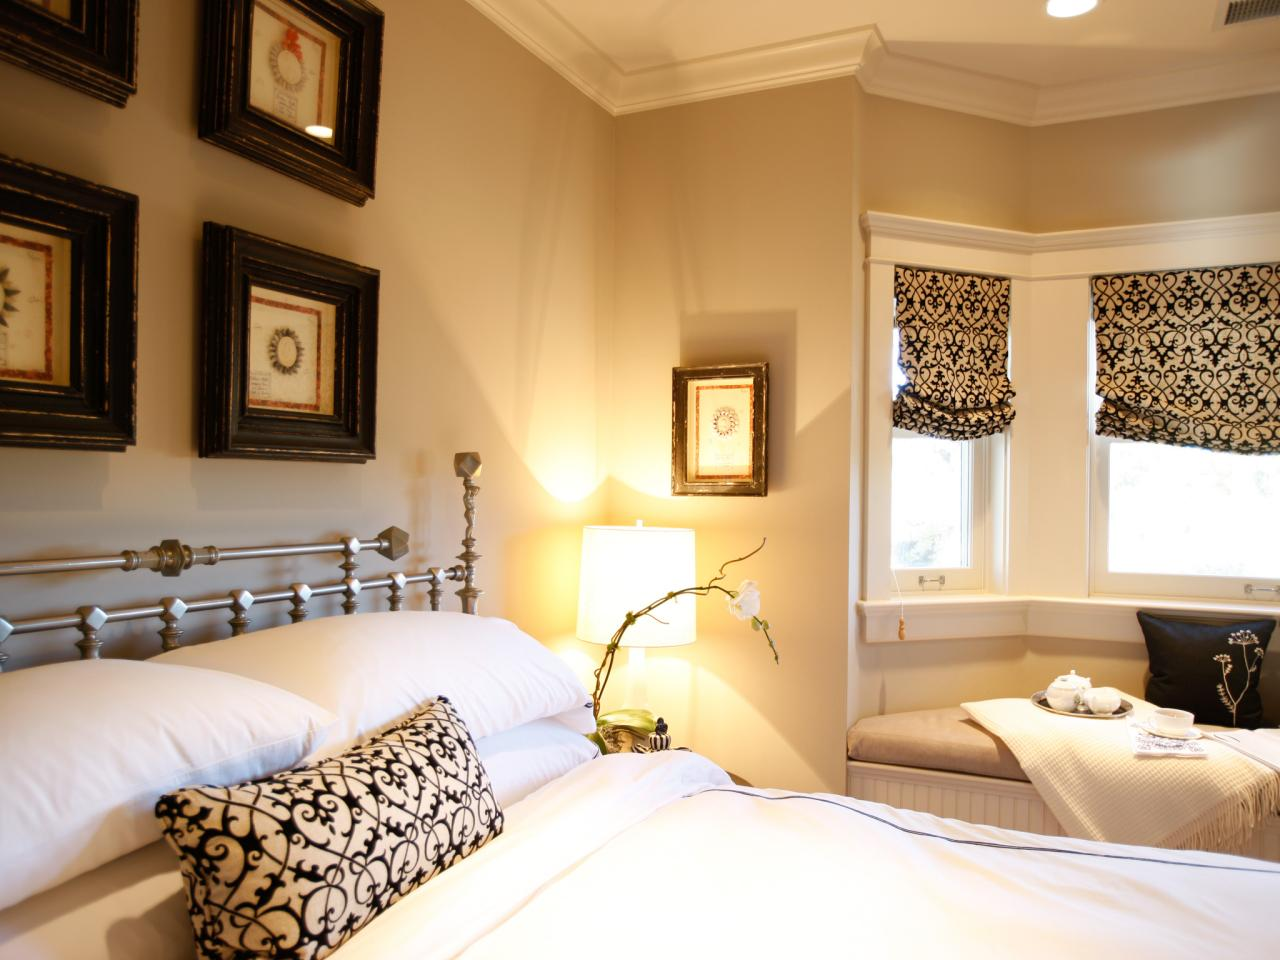 dp_jonathan-rachman-beige-traditional-bedroom-black-white_h-jpg-rend-hgtvcom-1280-960